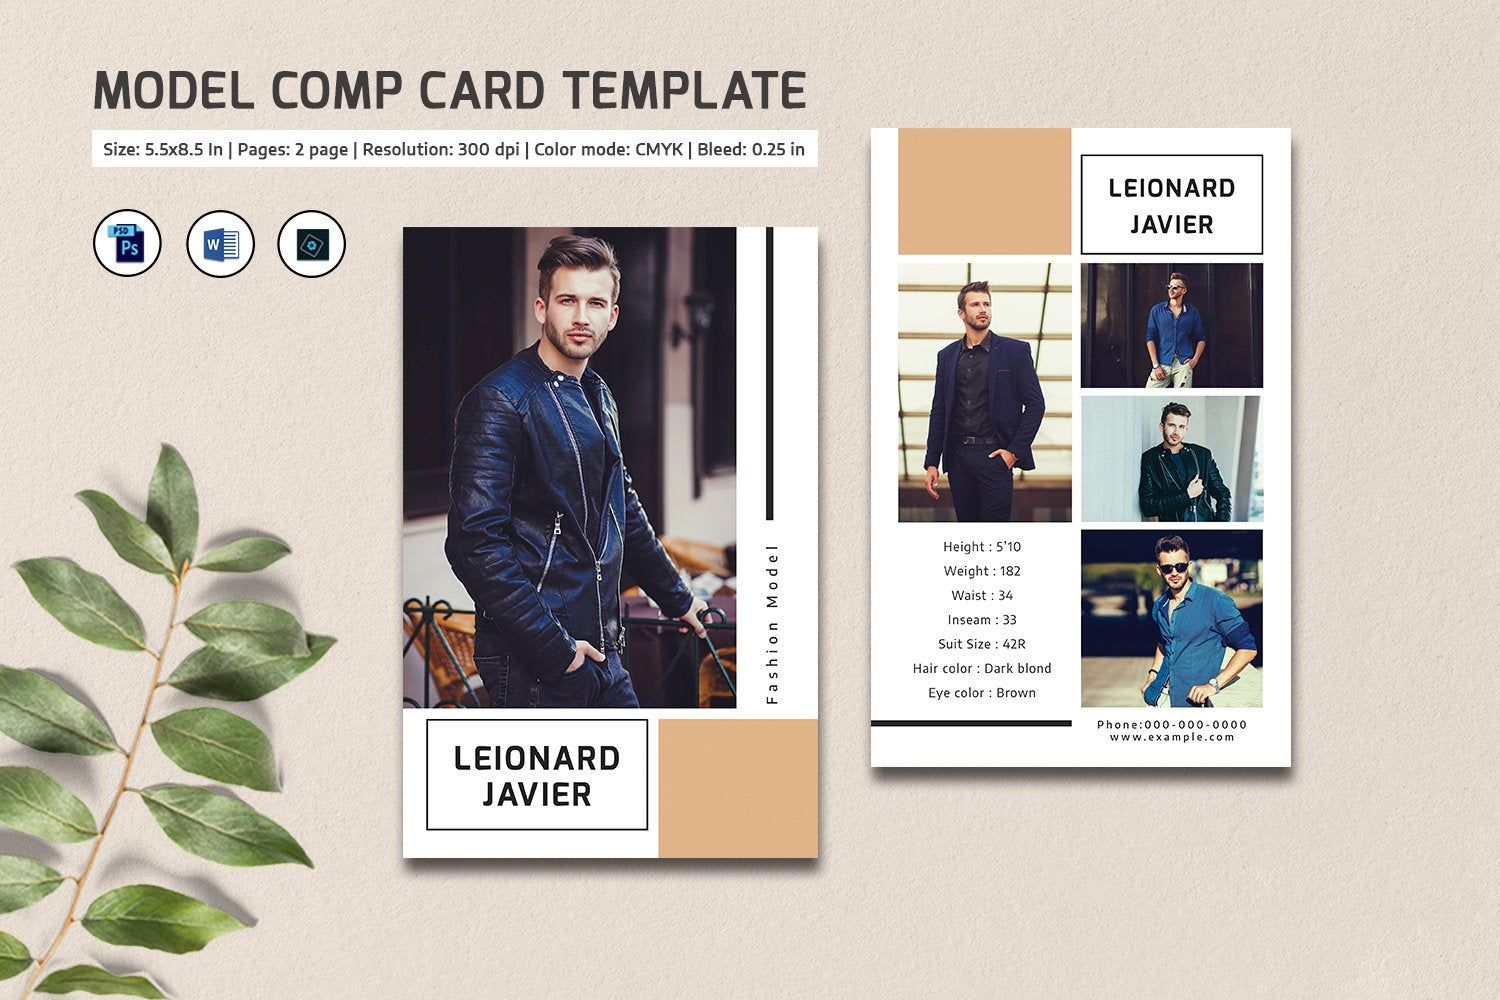 Model Comp Card Template | Fashion Model comp card ...